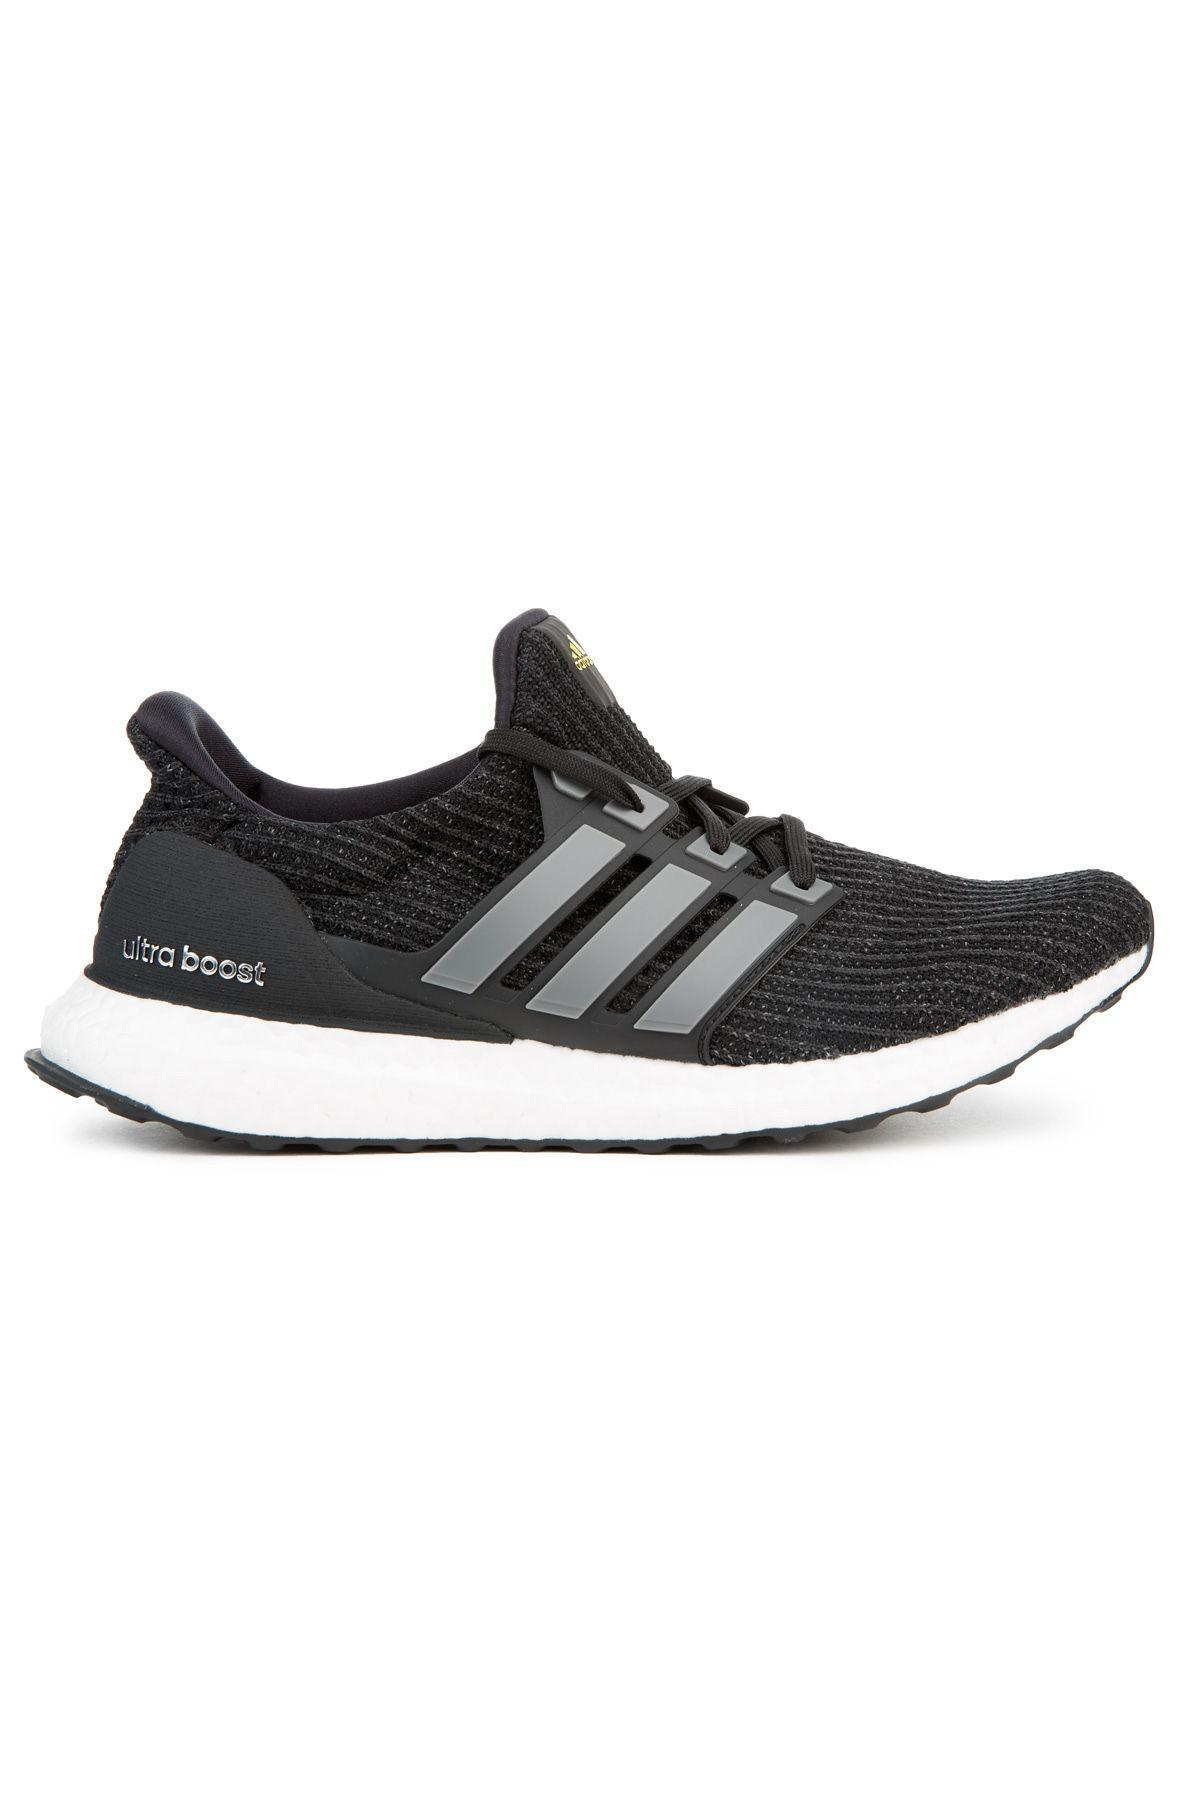 9cfc0ce07a9bc Lyst - adidas The Men s Ultraboost Ltd Energy Boost 5th Birthday In ...